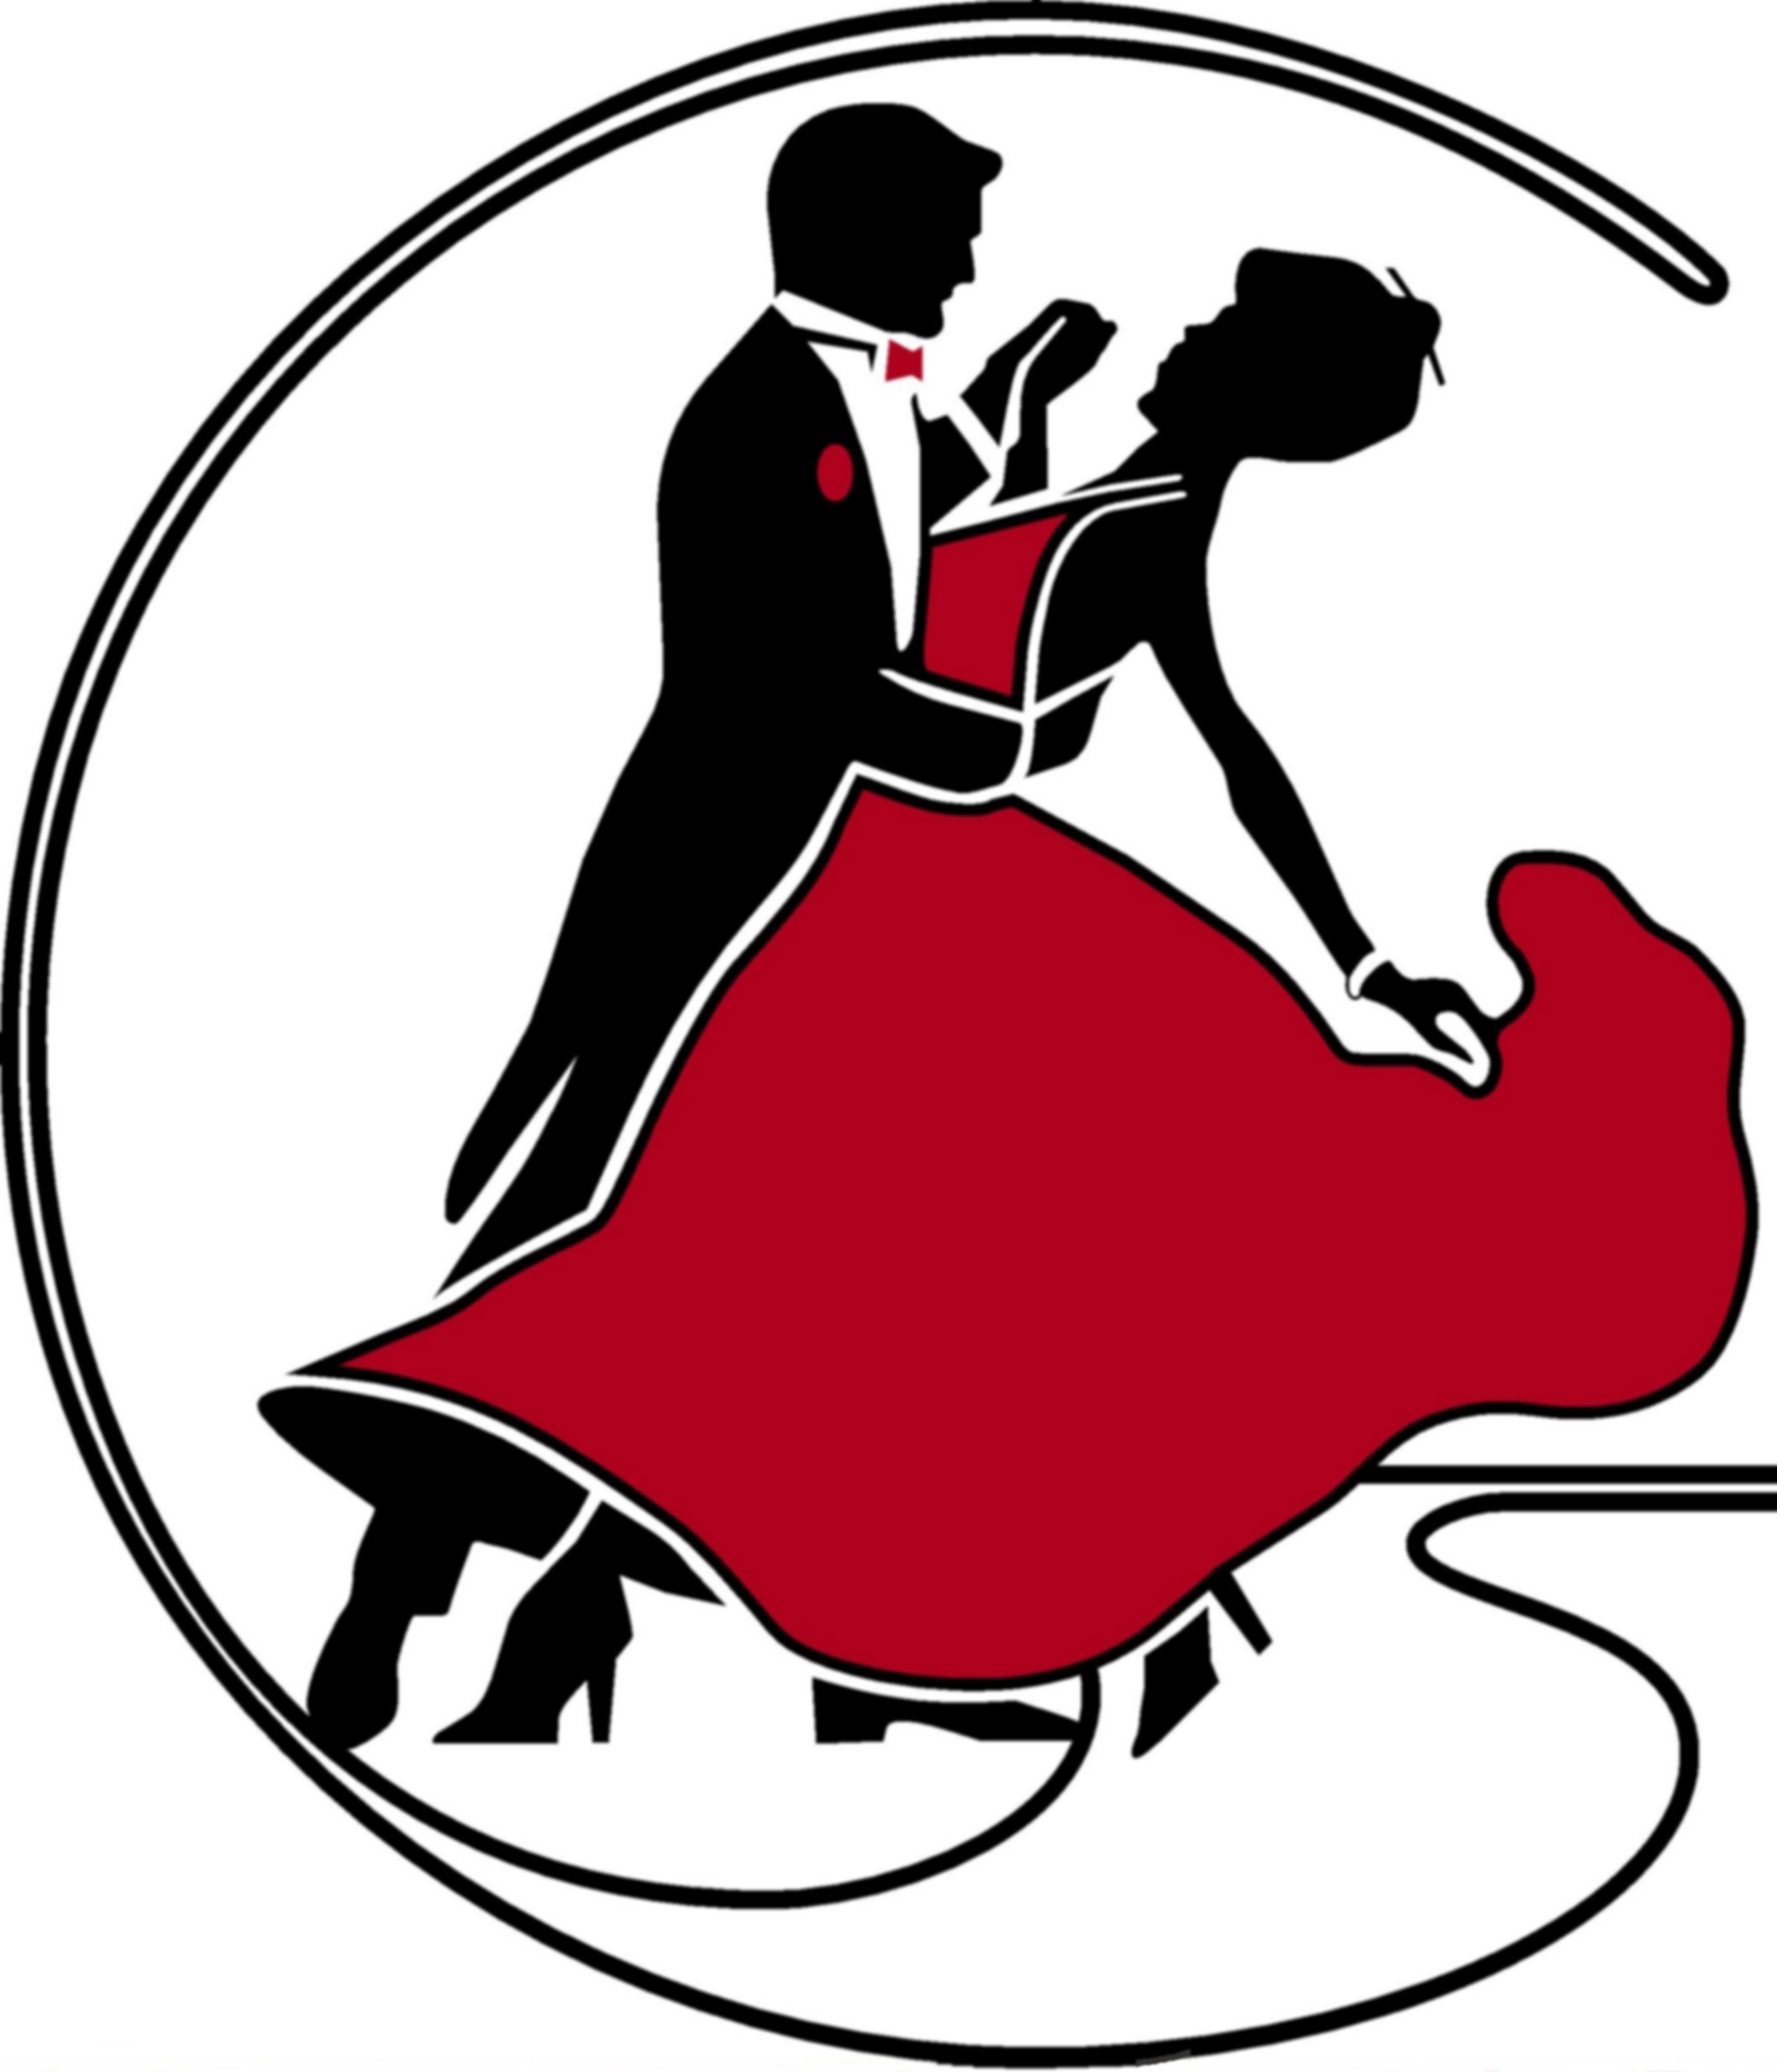 Dancer clipart logo. Free dance at getdrawings